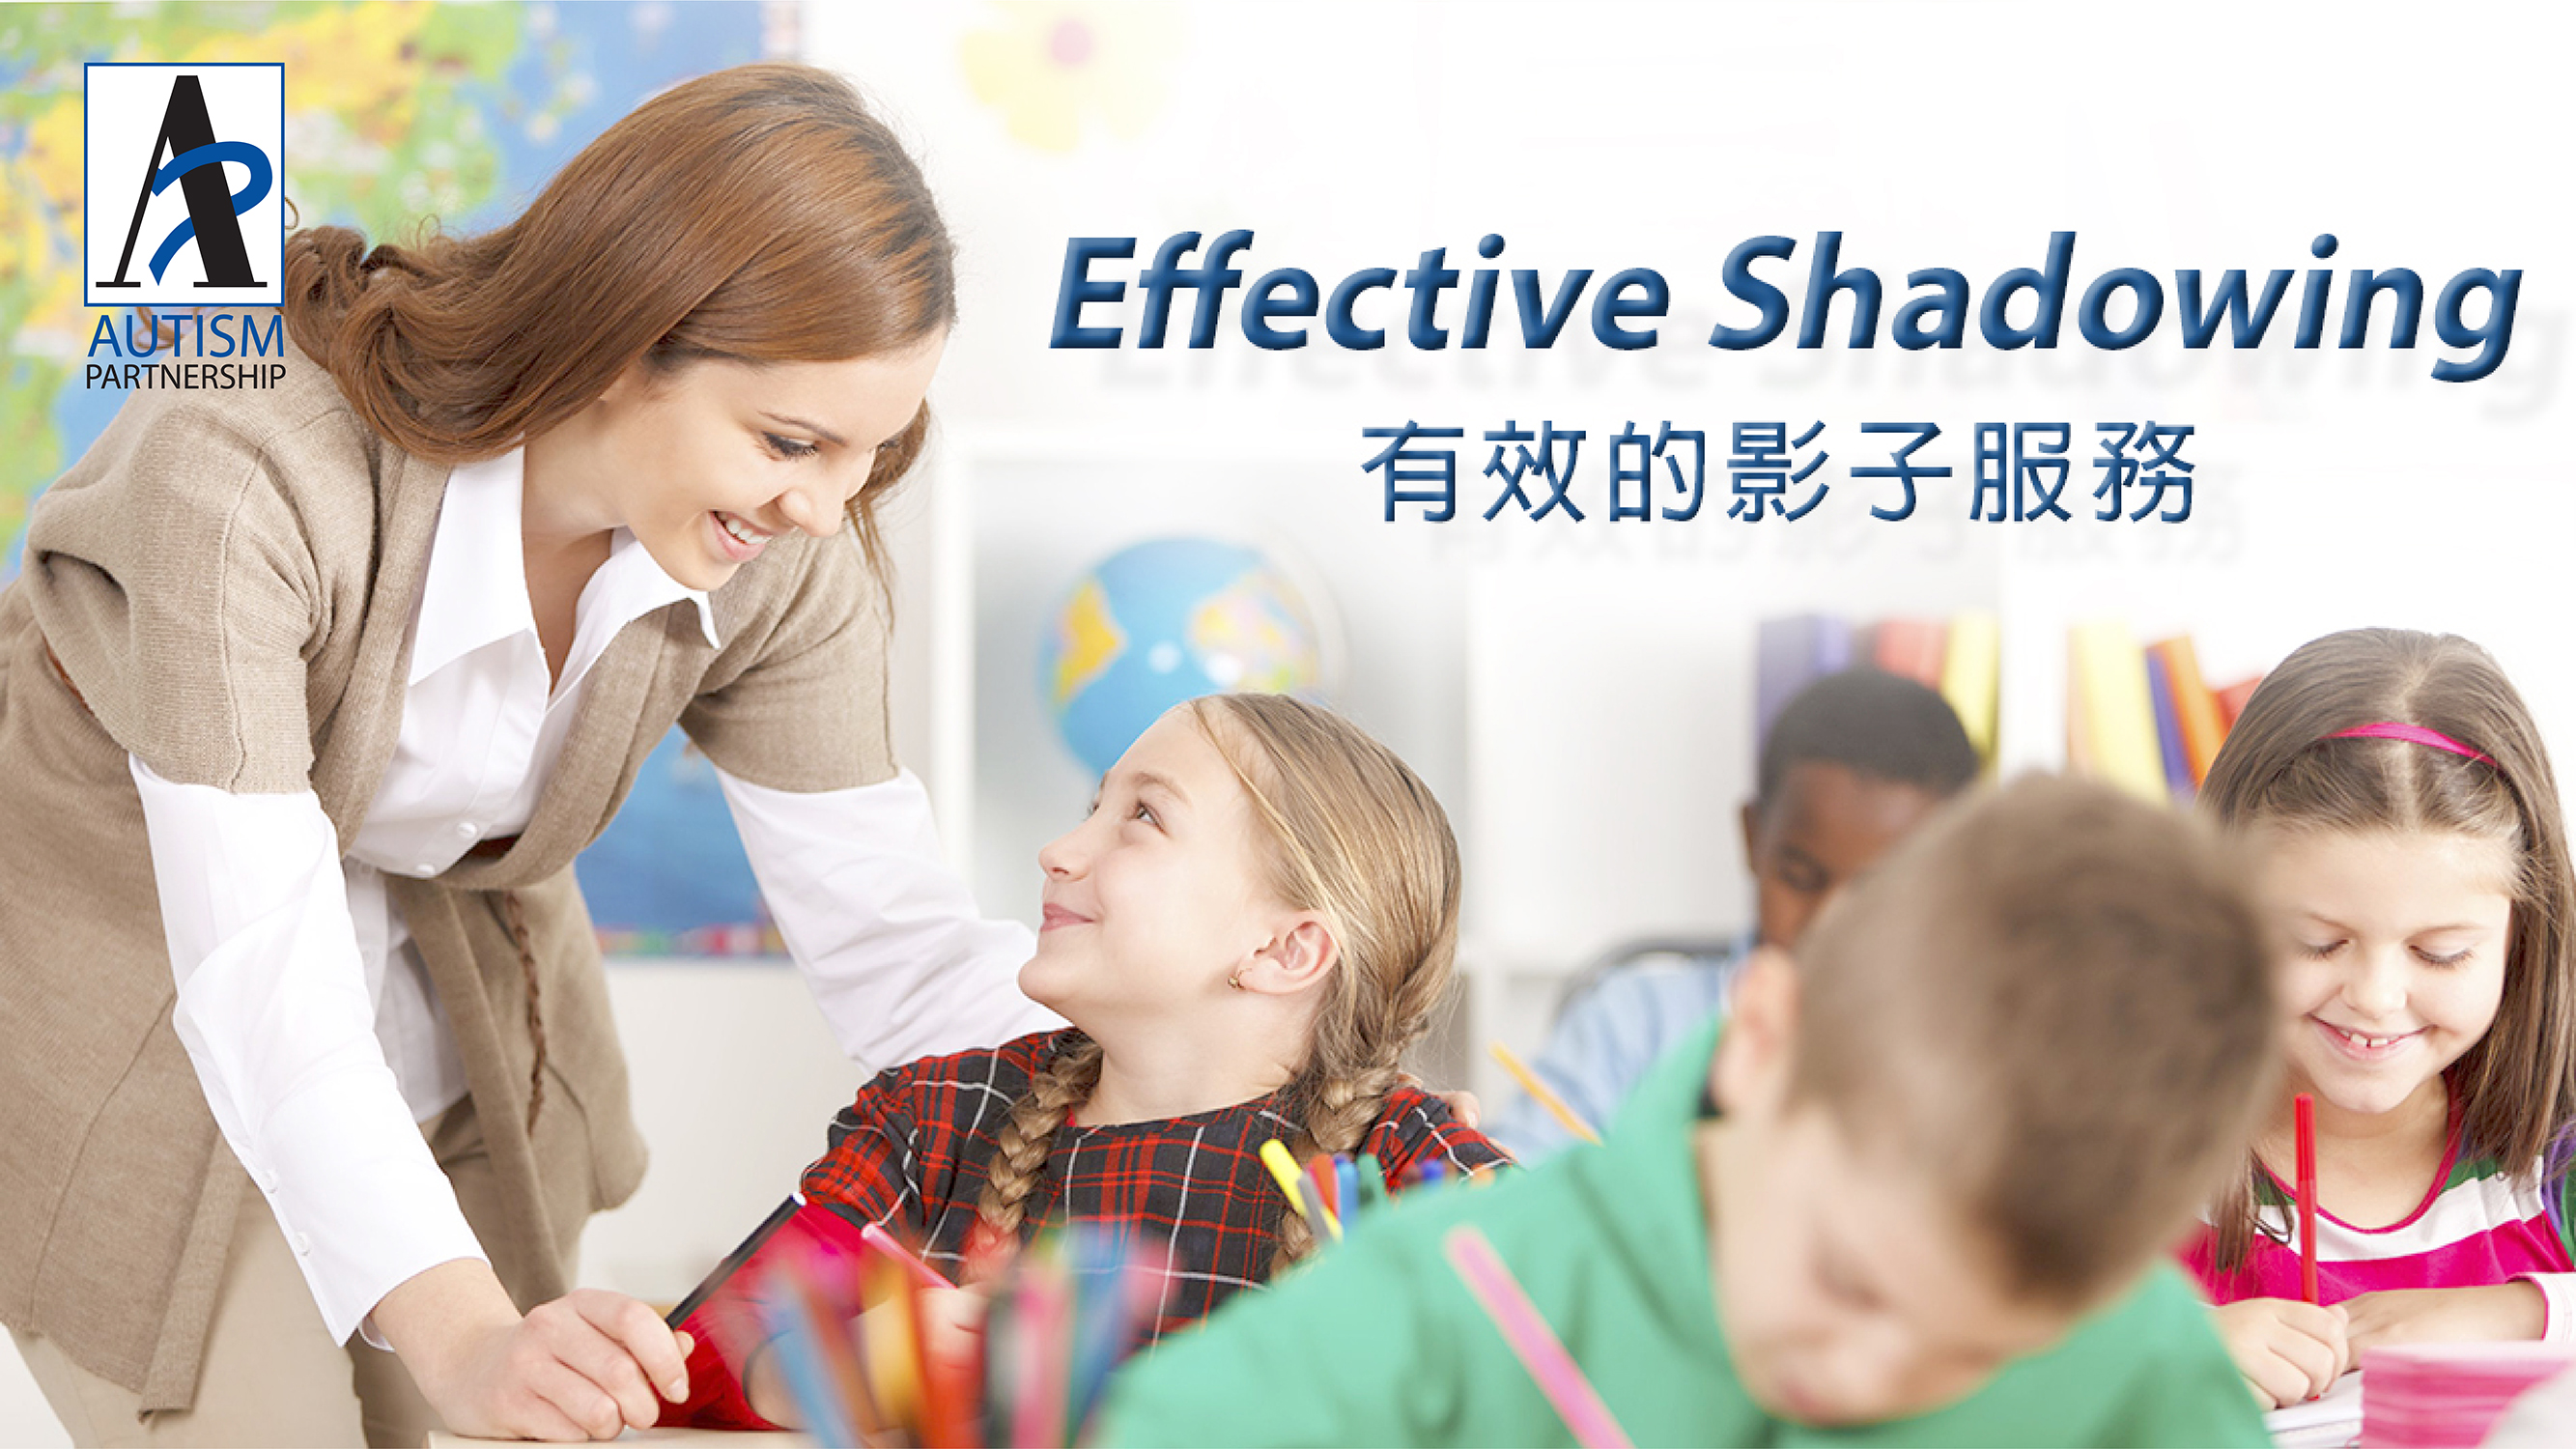 Effective Shadowing – Autism Partnership